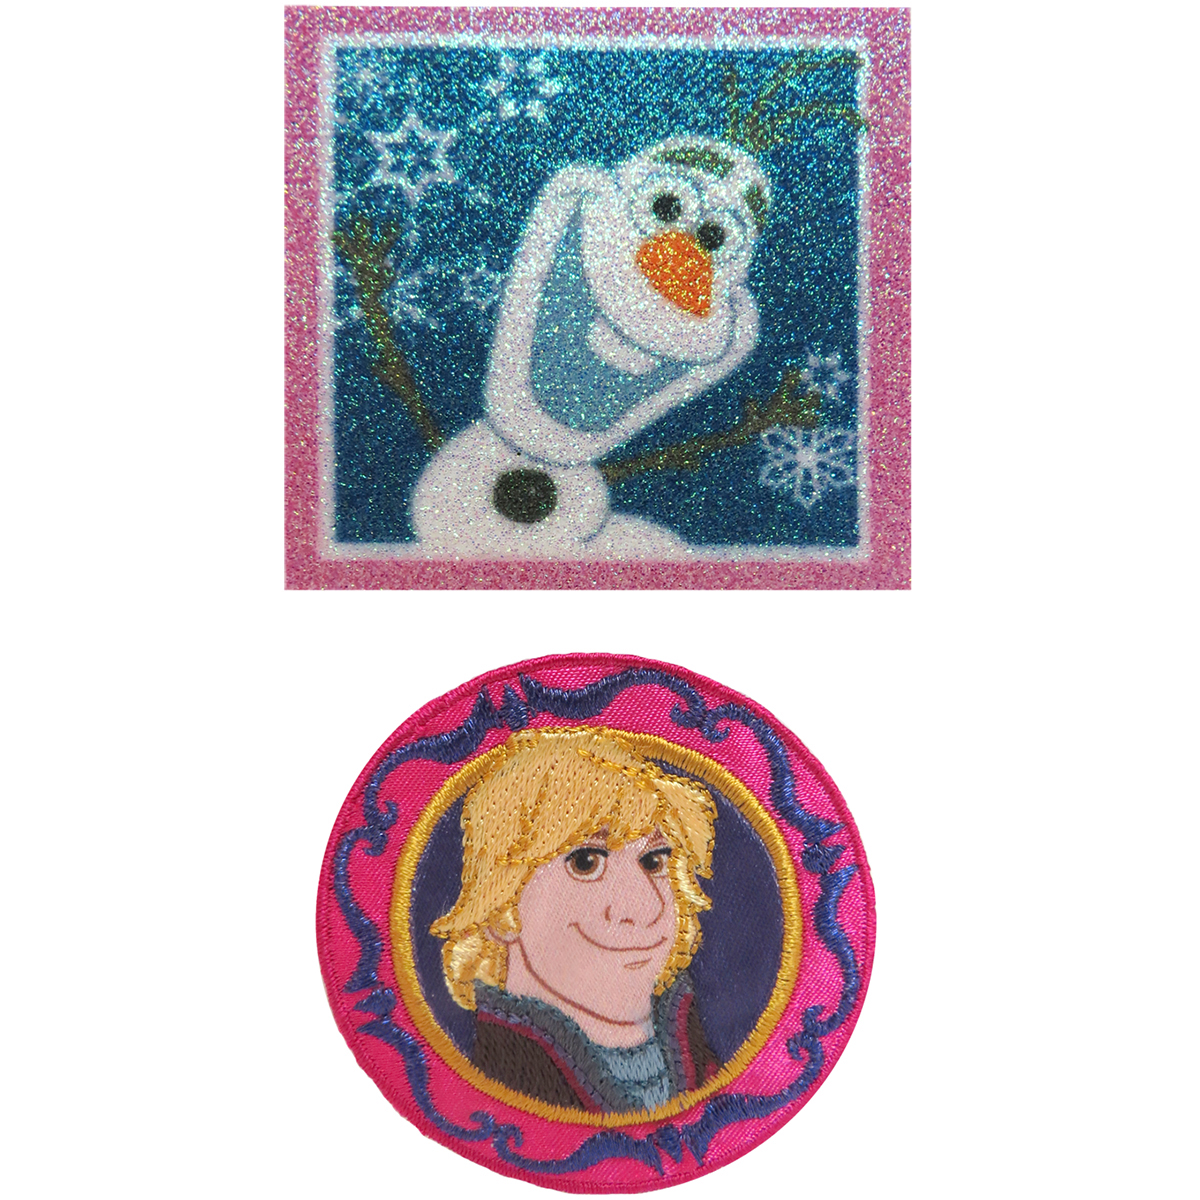 Disney Frozen Olaf & Kristoff Iron-On Appliques